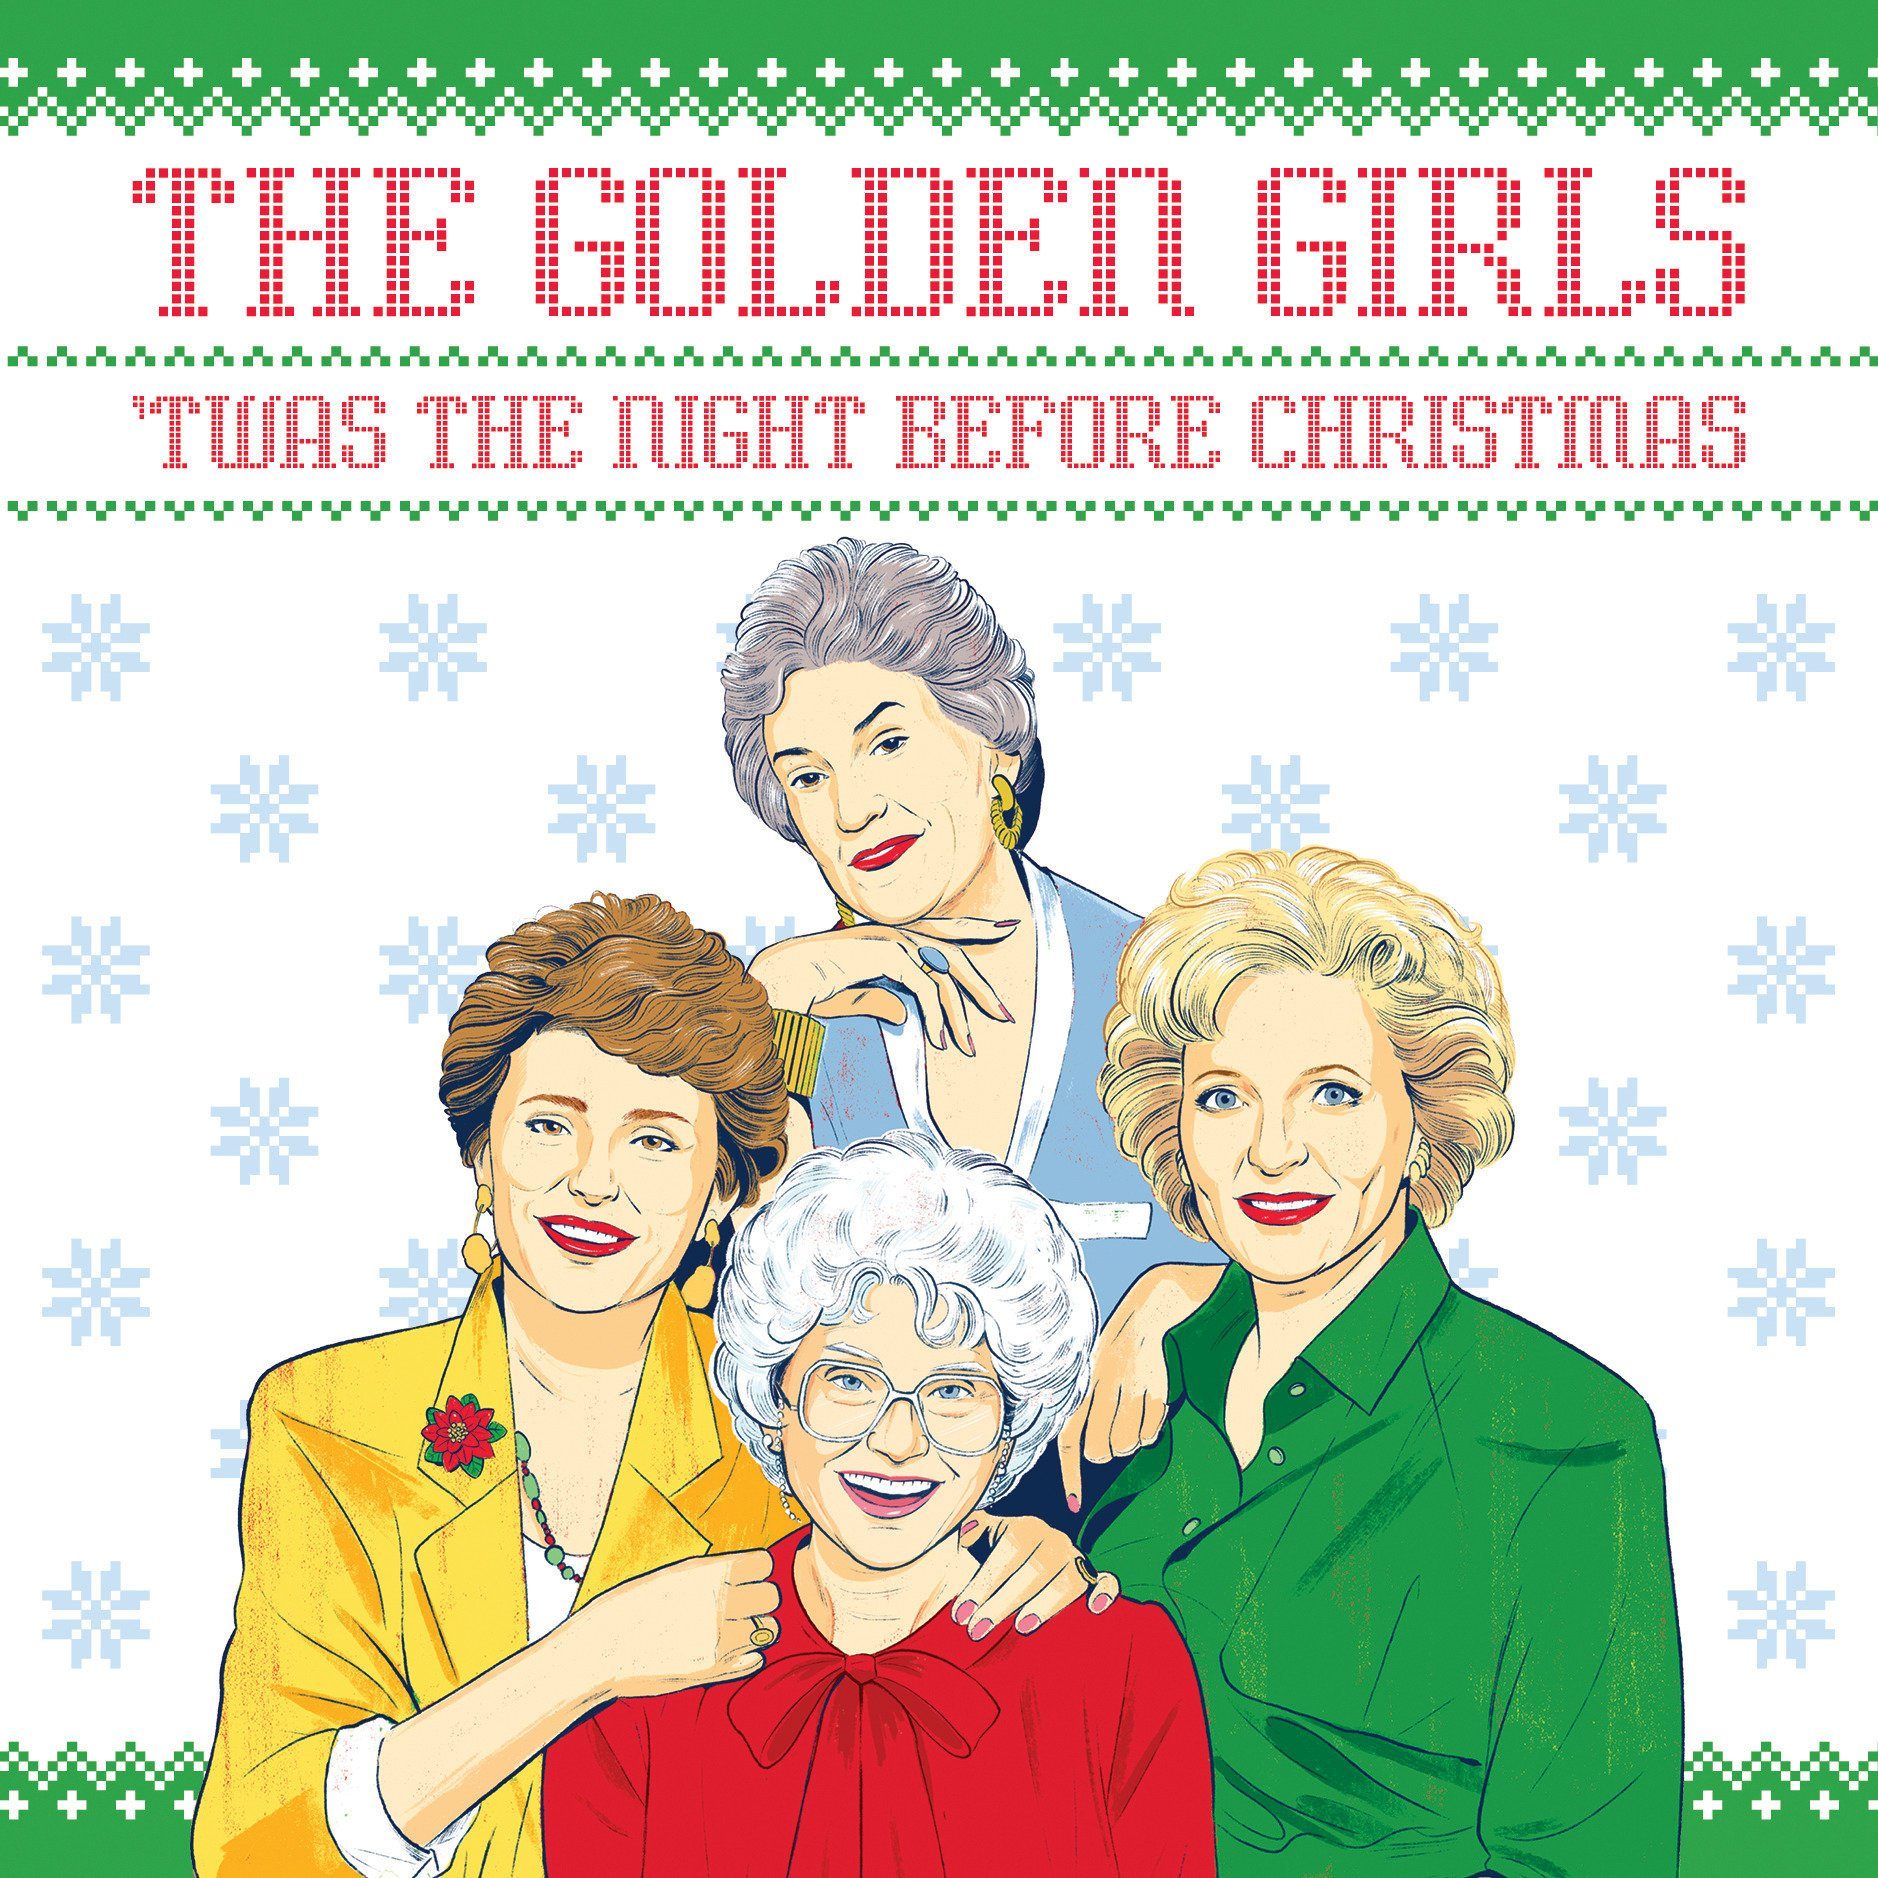 the golden girls twas the night before christmas francesco sedita douglas yacka alex fine 9781524789923 amazoncom books